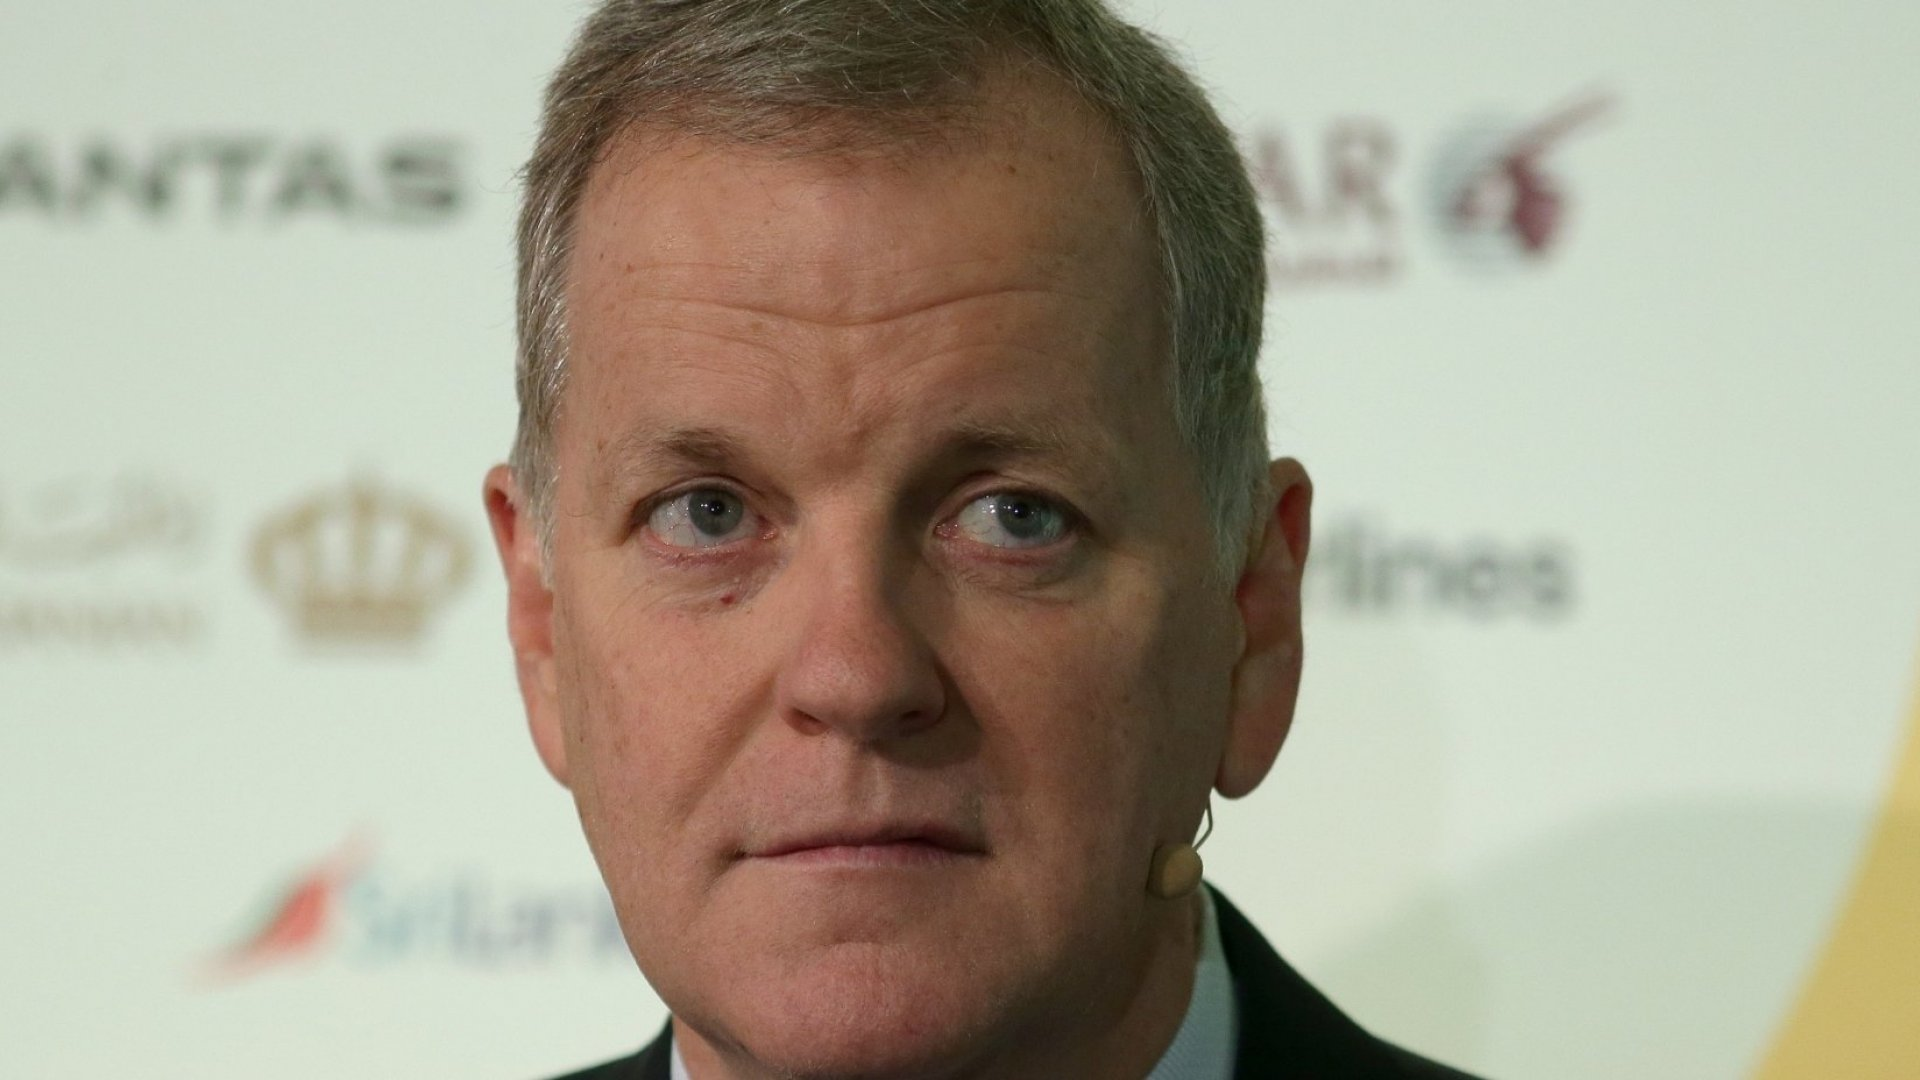 American Airlines' CEO Was Asked a Brutally Direct Question About the Airline's Problems. His Response Was Breathtaking